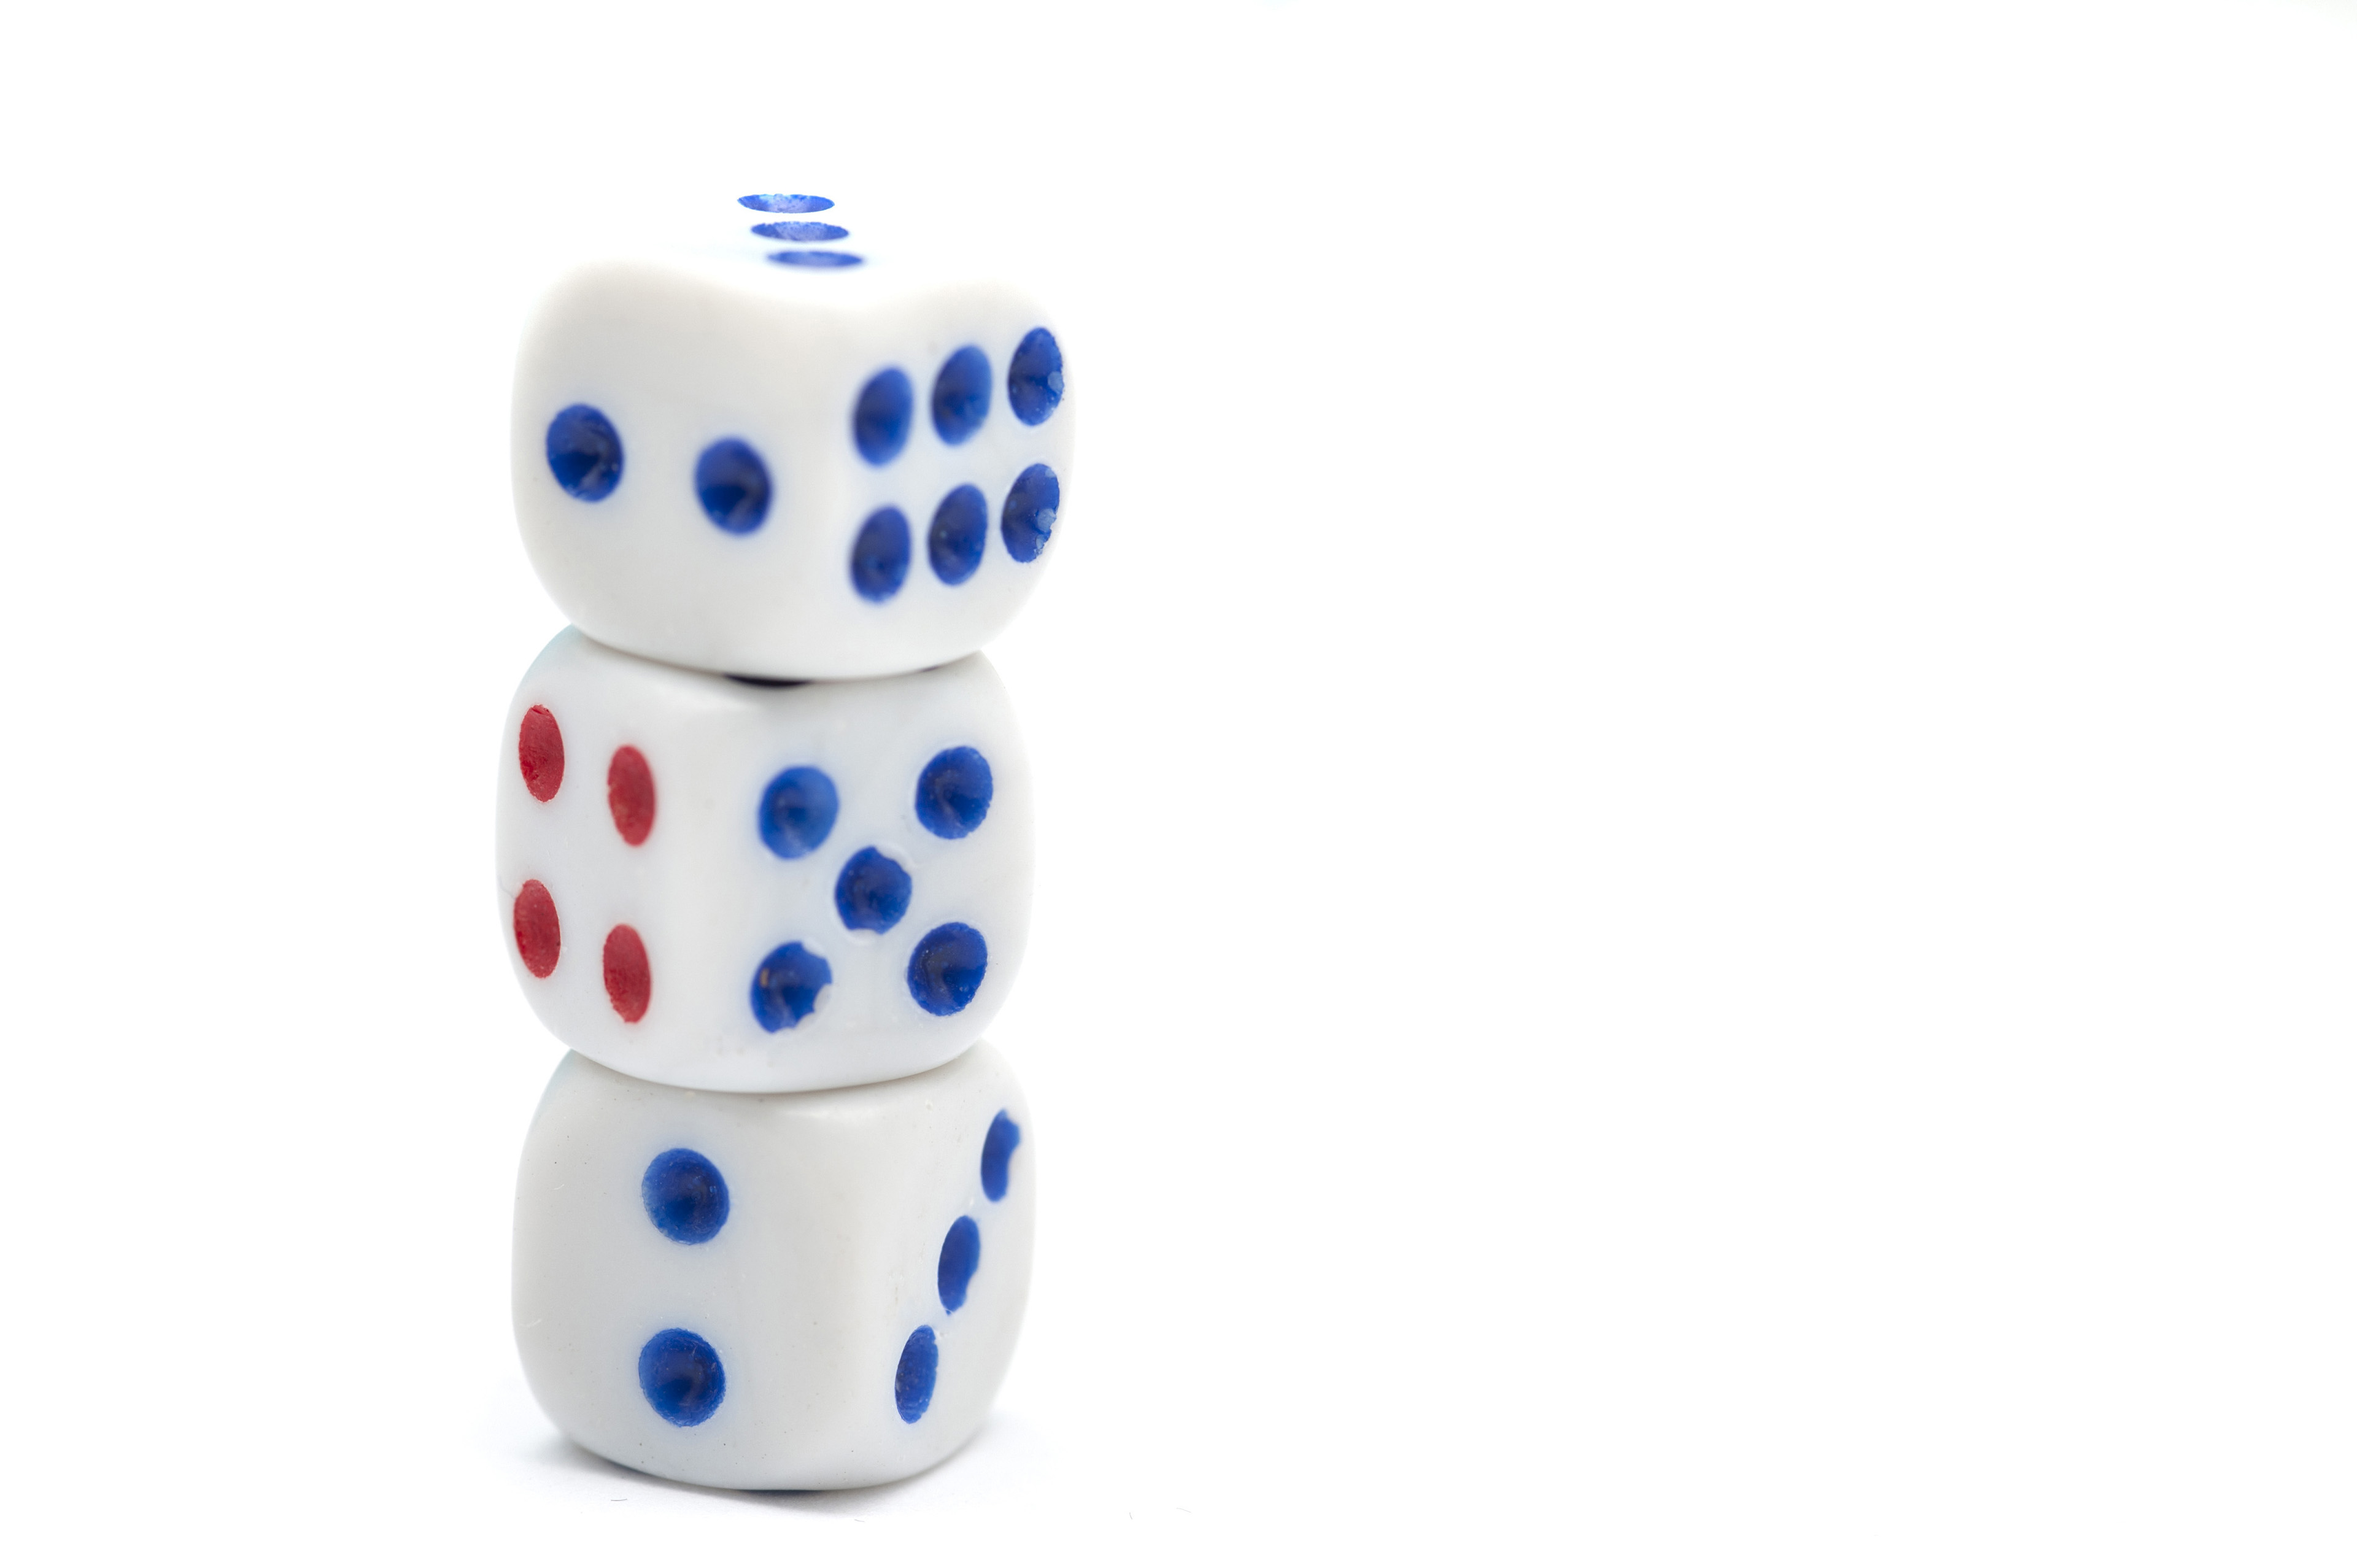 Three Dice with Blue and Red Dots Stacked Vertically on White Background